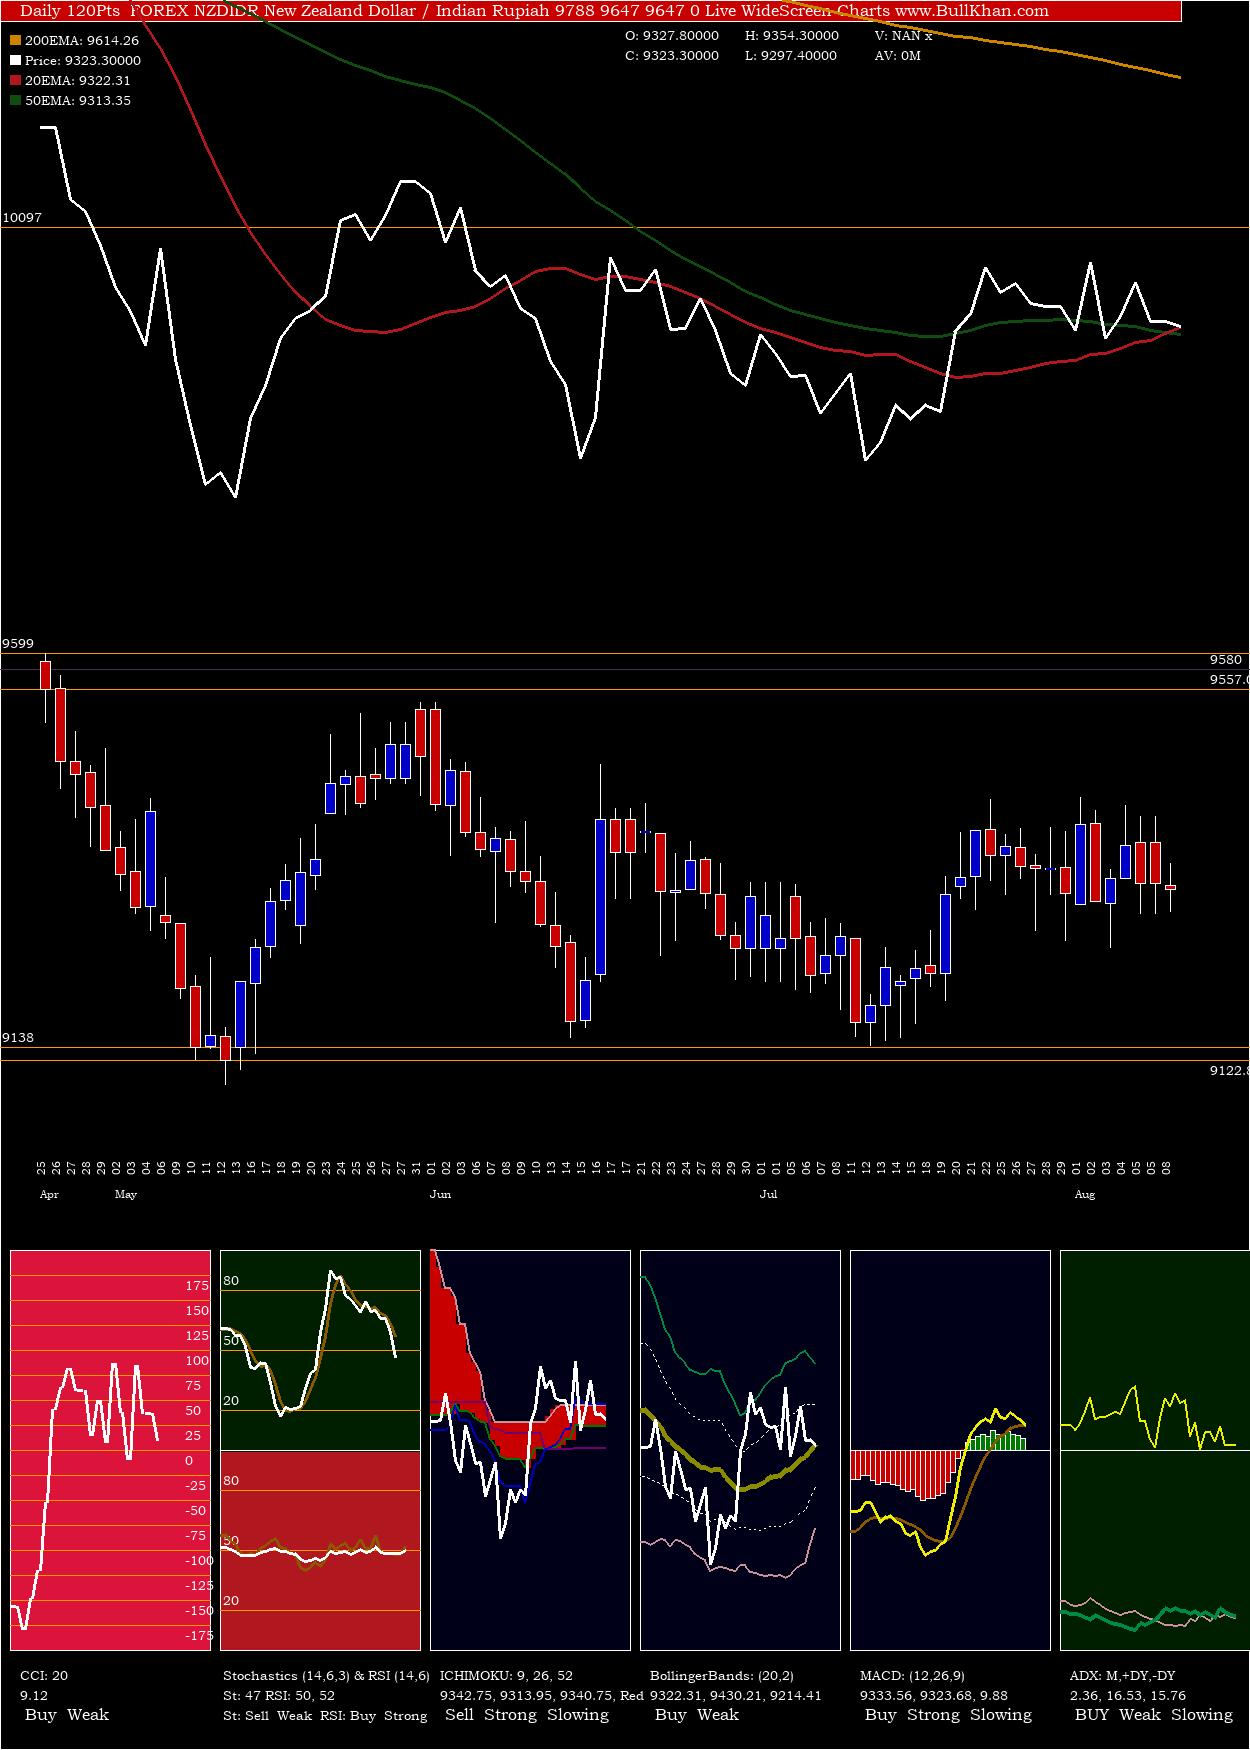 New Zealand Dollar / Indian Rupiah 9788 9647 9647 0 charts and indicators